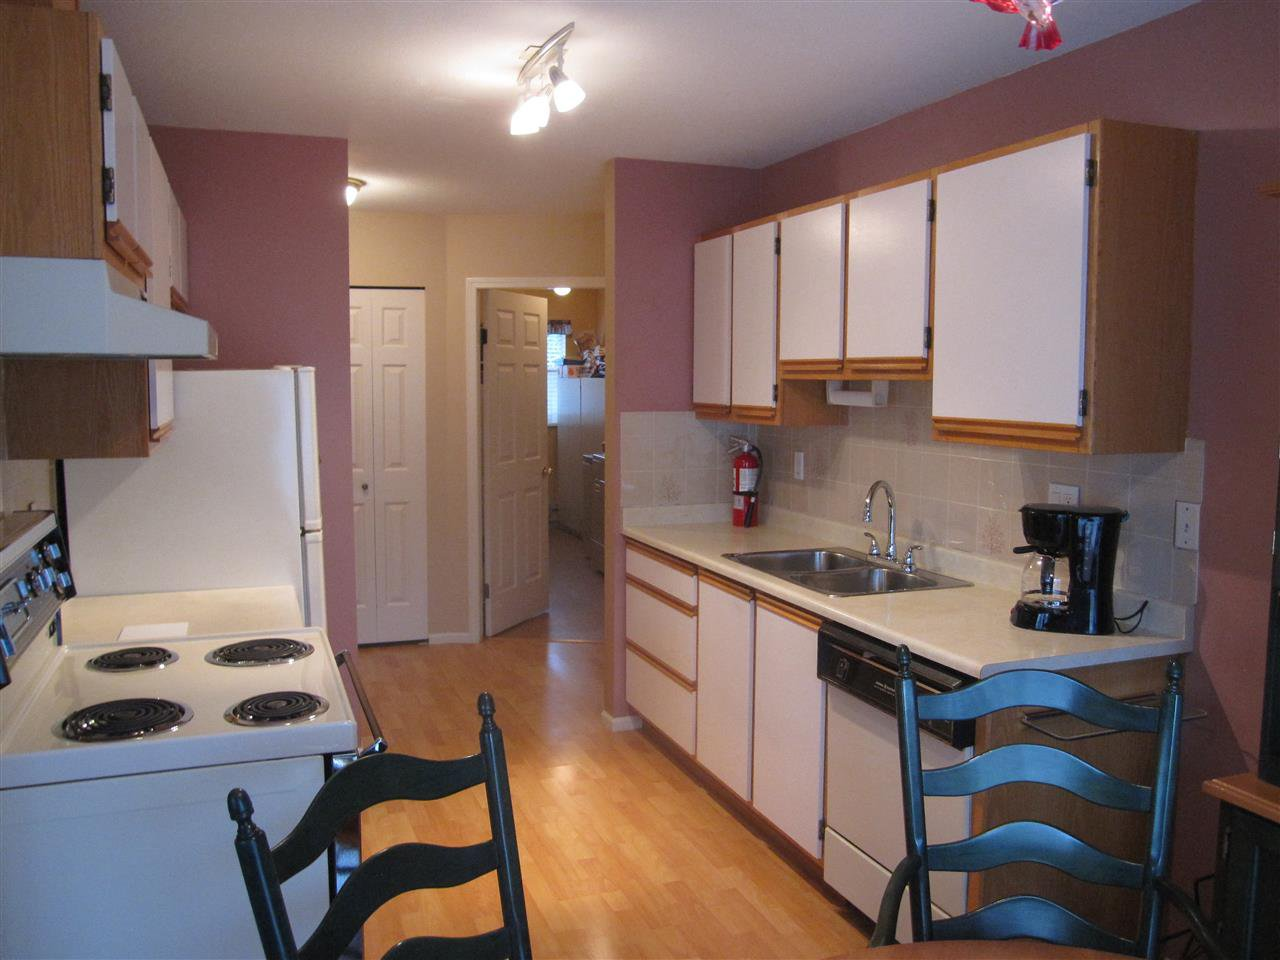 """Photo 4: Photos: 26 12296 224 Street in Maple Ridge: East Central Townhouse for sale in """"The Colonial"""" : MLS®# R2430767"""